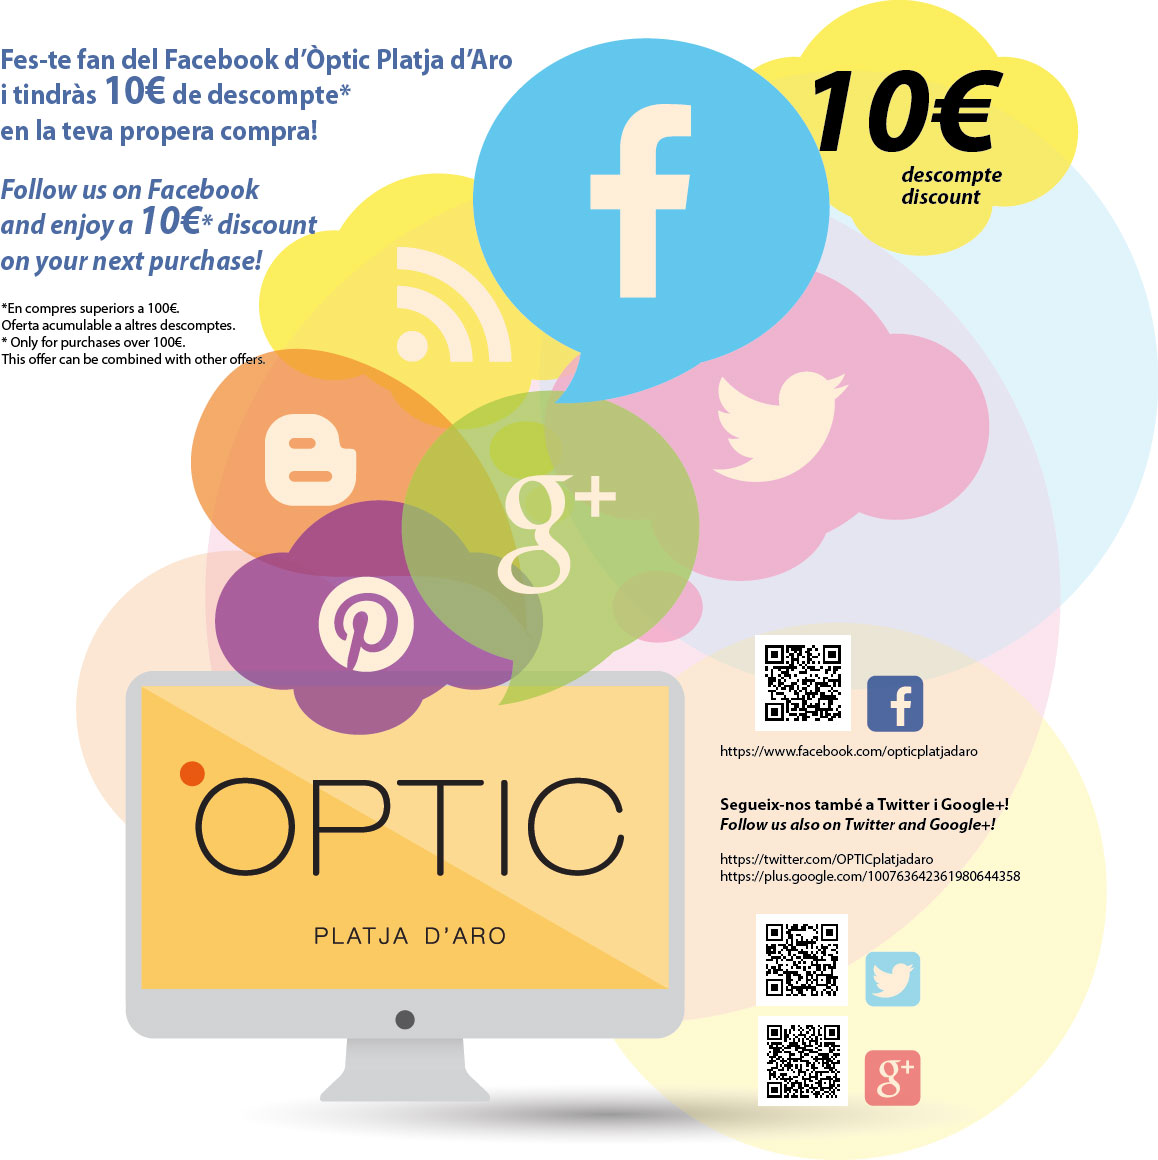 OpticFacebookperWeb1